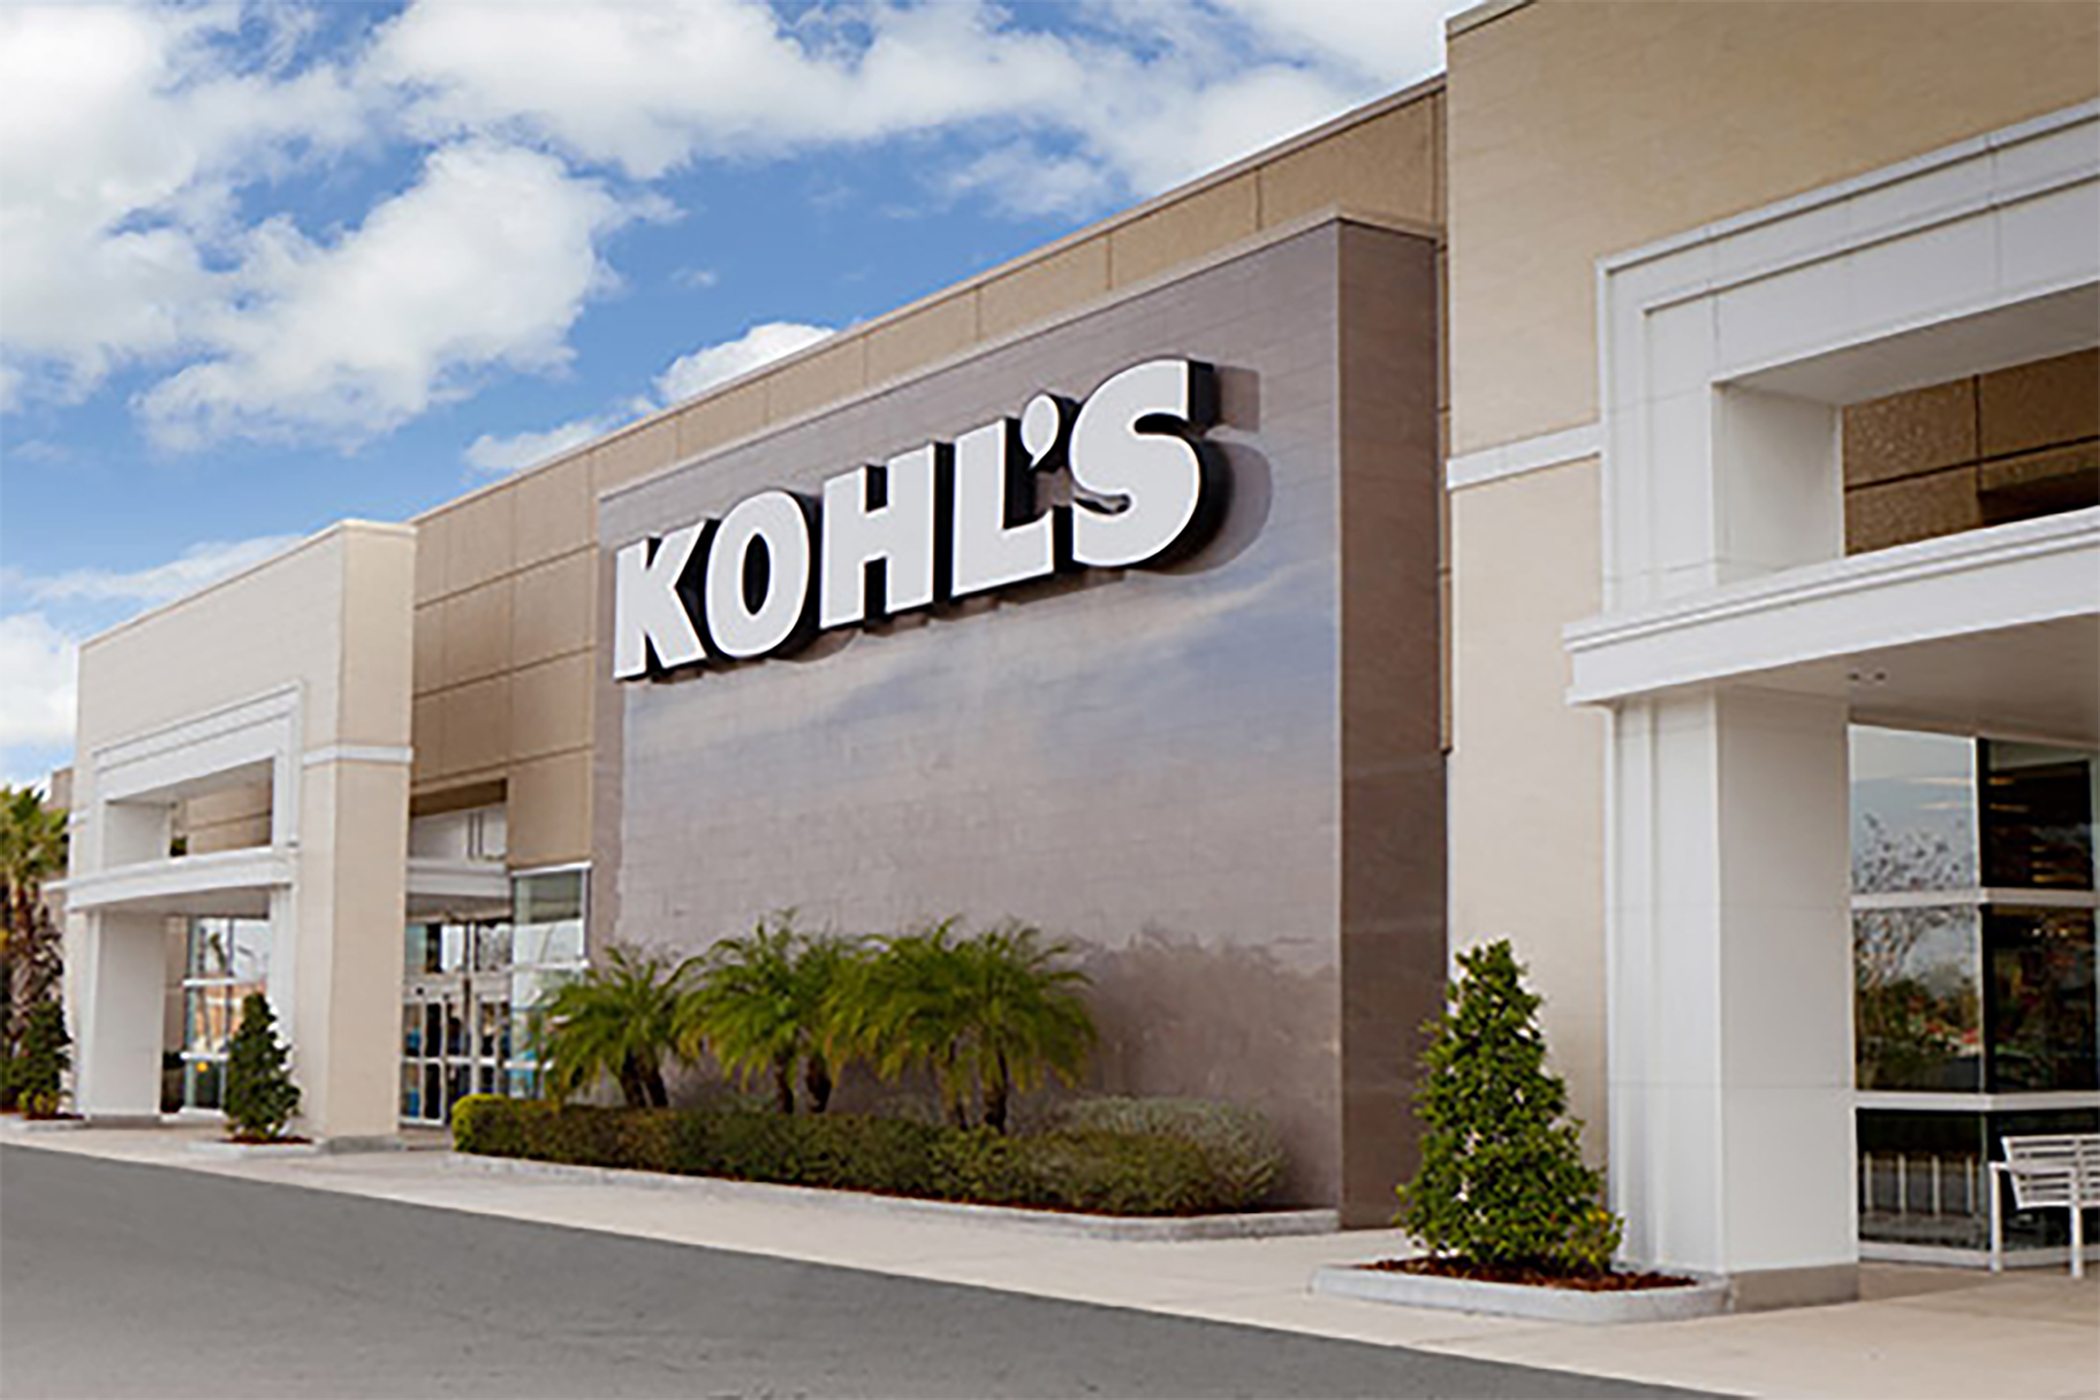 Kohl?s gives customers multiple purchasing options, including curbside pickup. (Kohl?s)